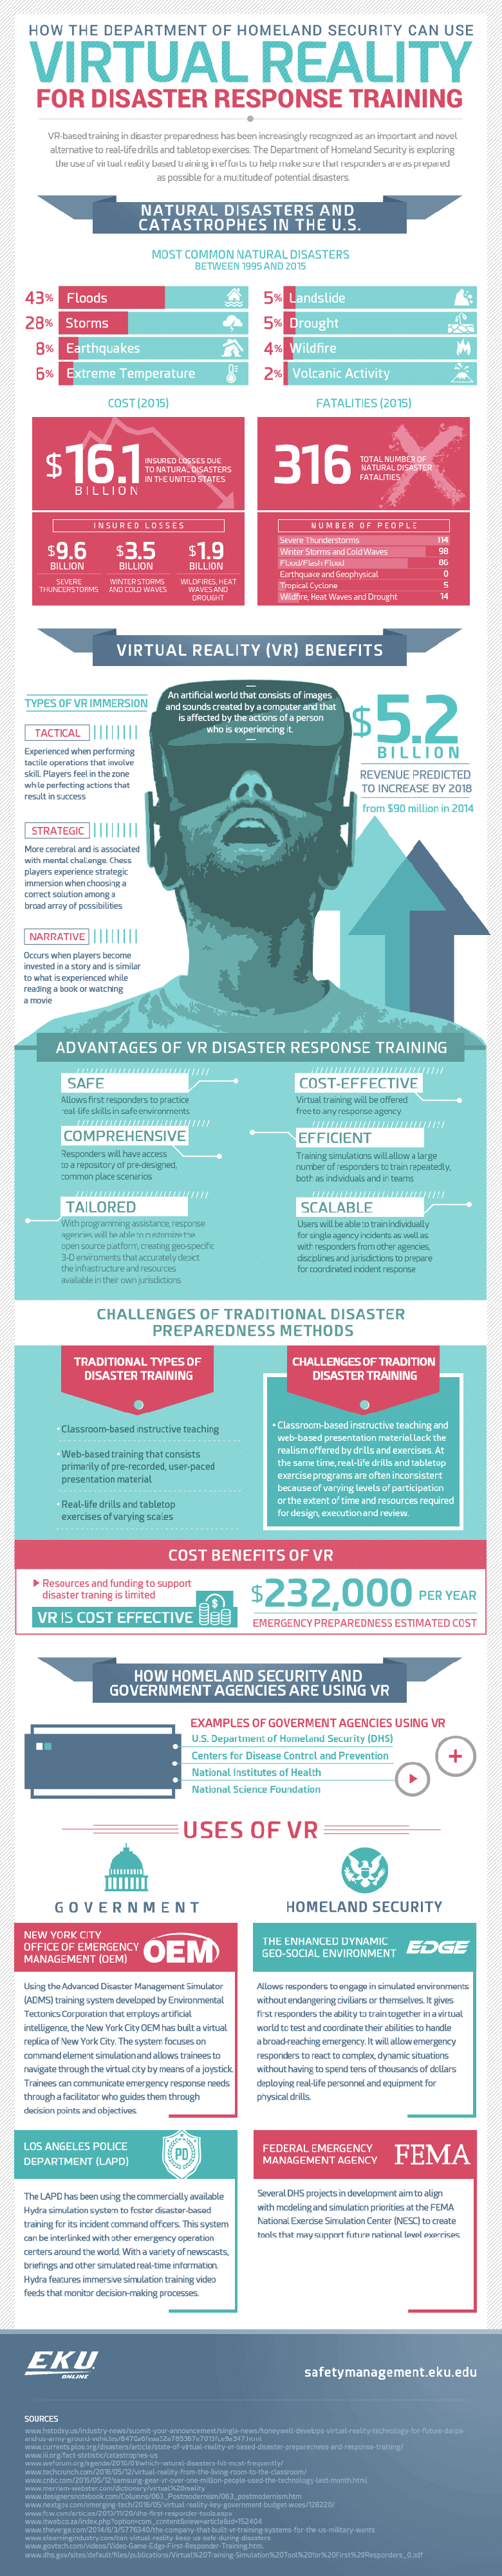 Infographic on Using Virtual Reality for Disaster Response Training